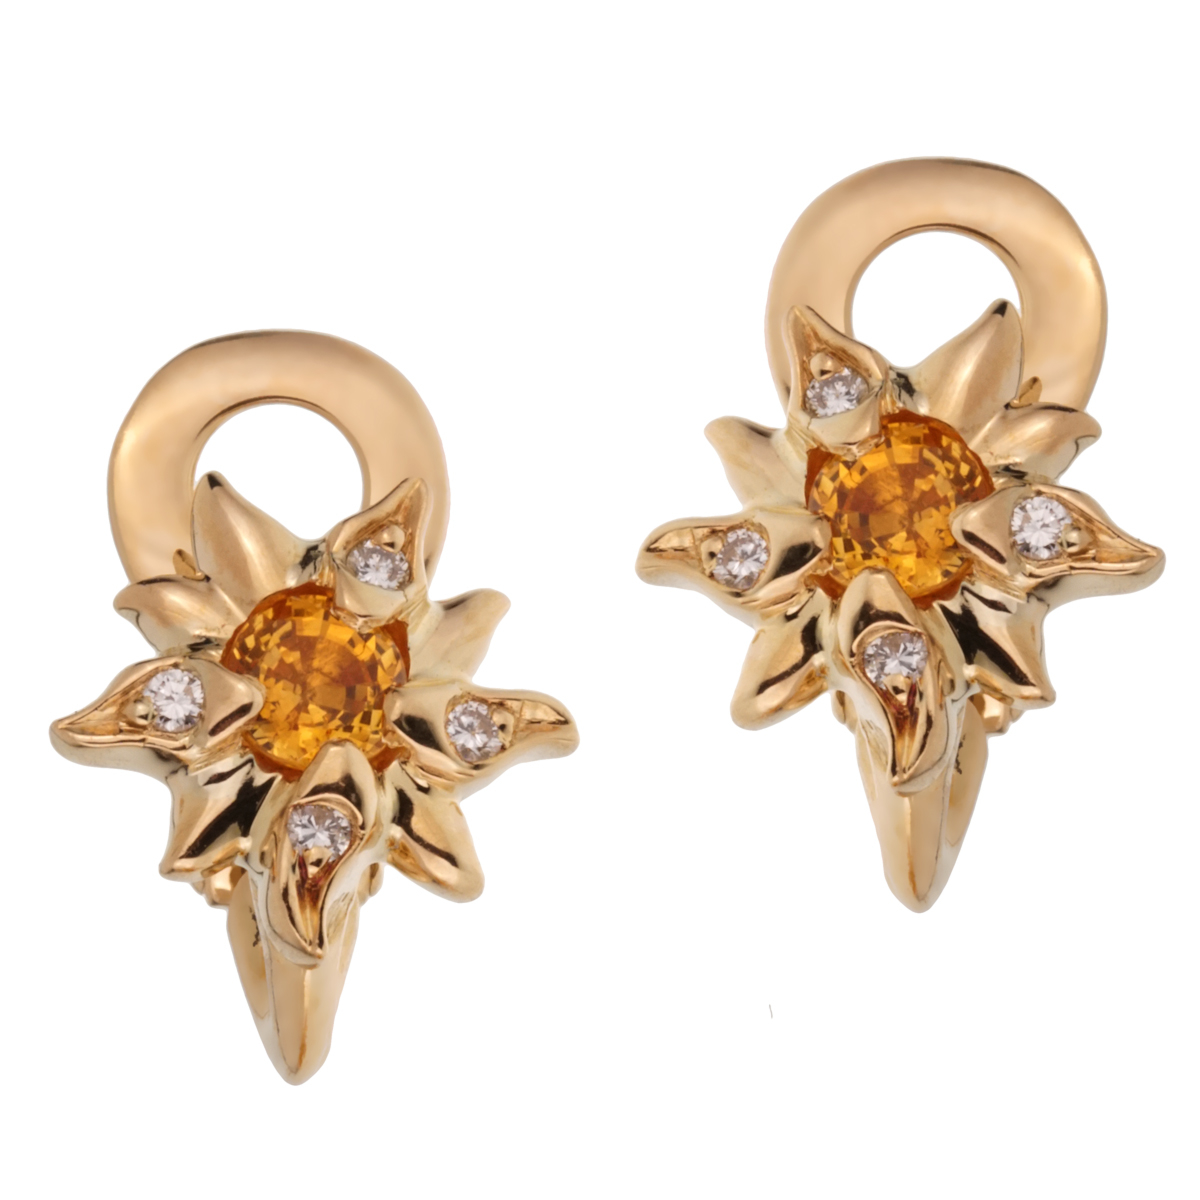 Chanel Comete Yellow Sapphire Diamond Gold Earrings - Chanel Jewelry